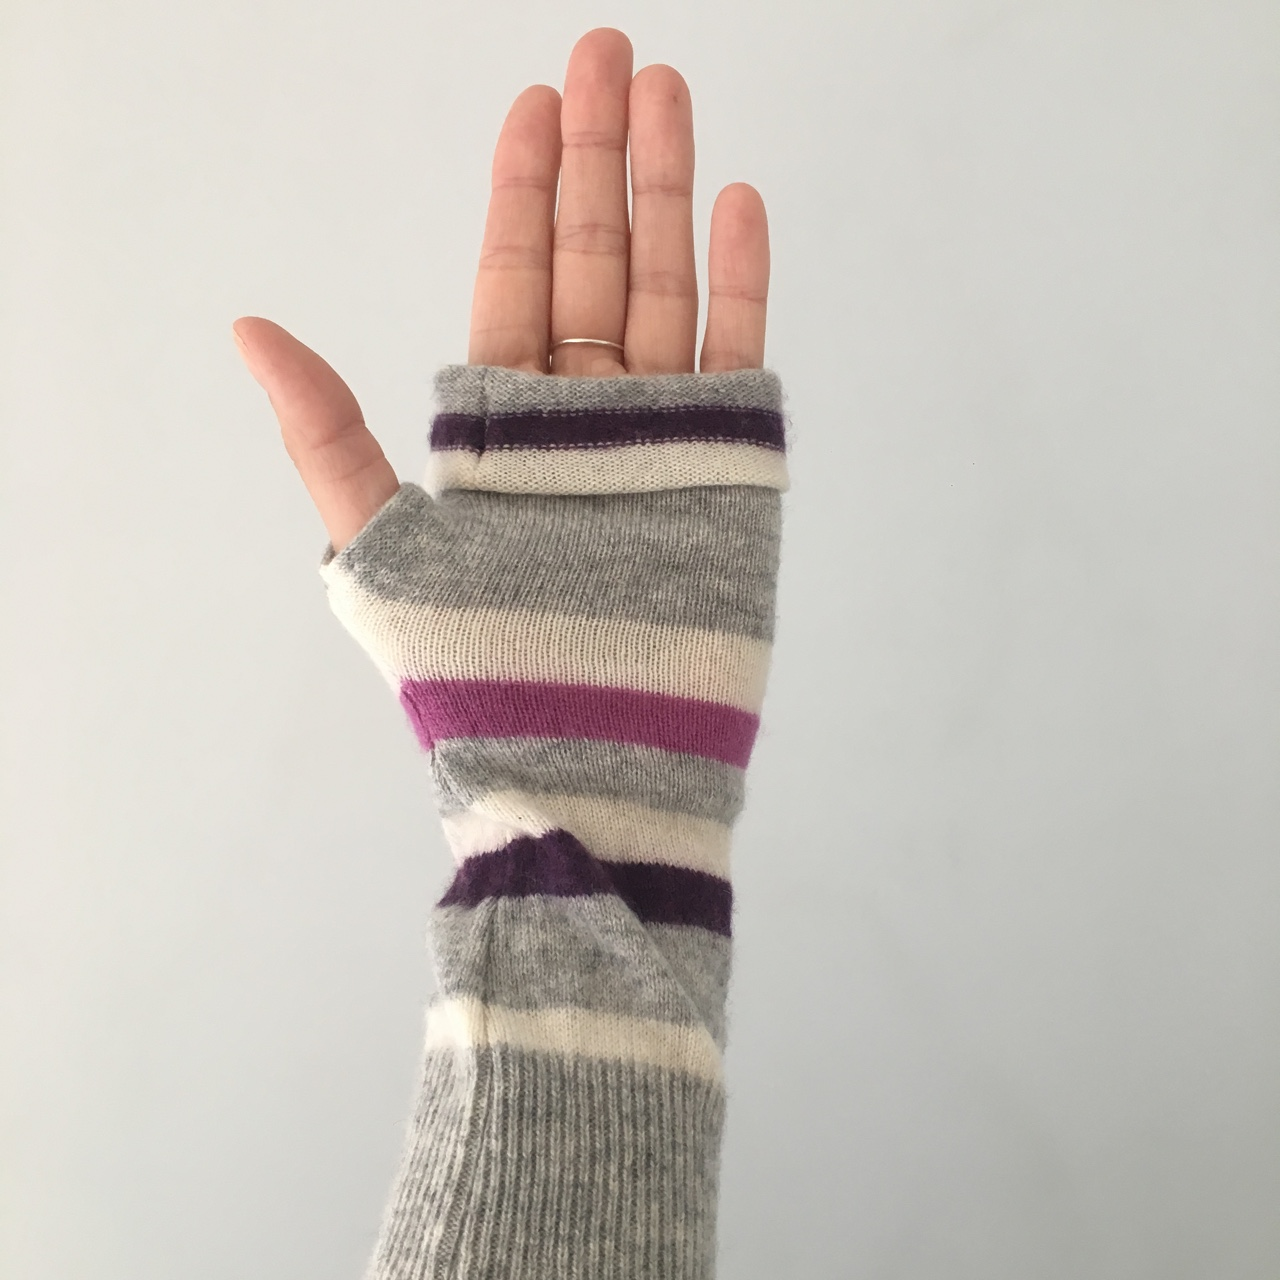 ❄️Lovely #turtledoves #cashmere fingerless #gloves